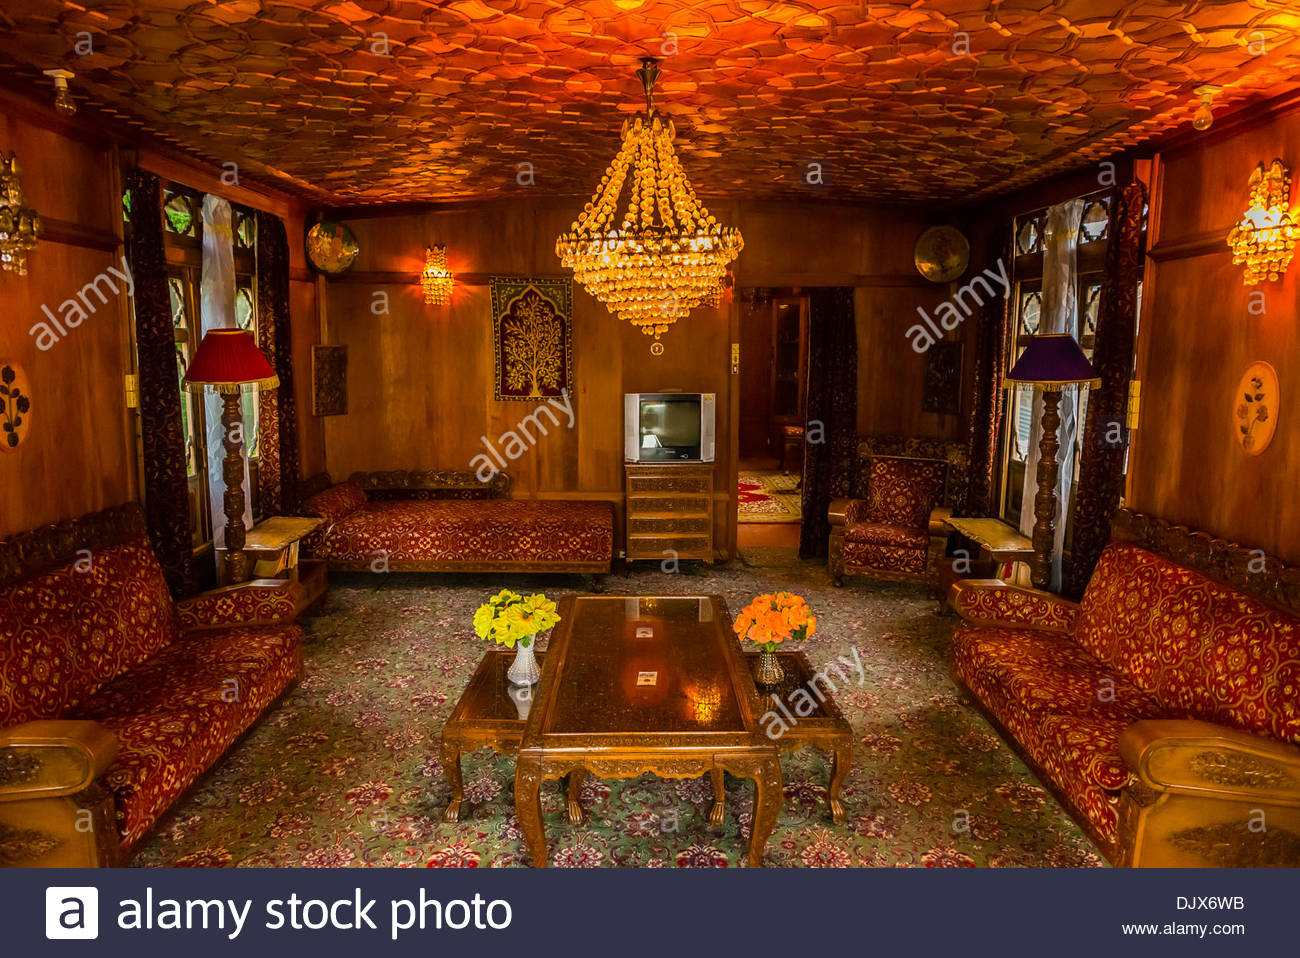 Interior view new golden hind a luxury houseboat on dal lake srinagar